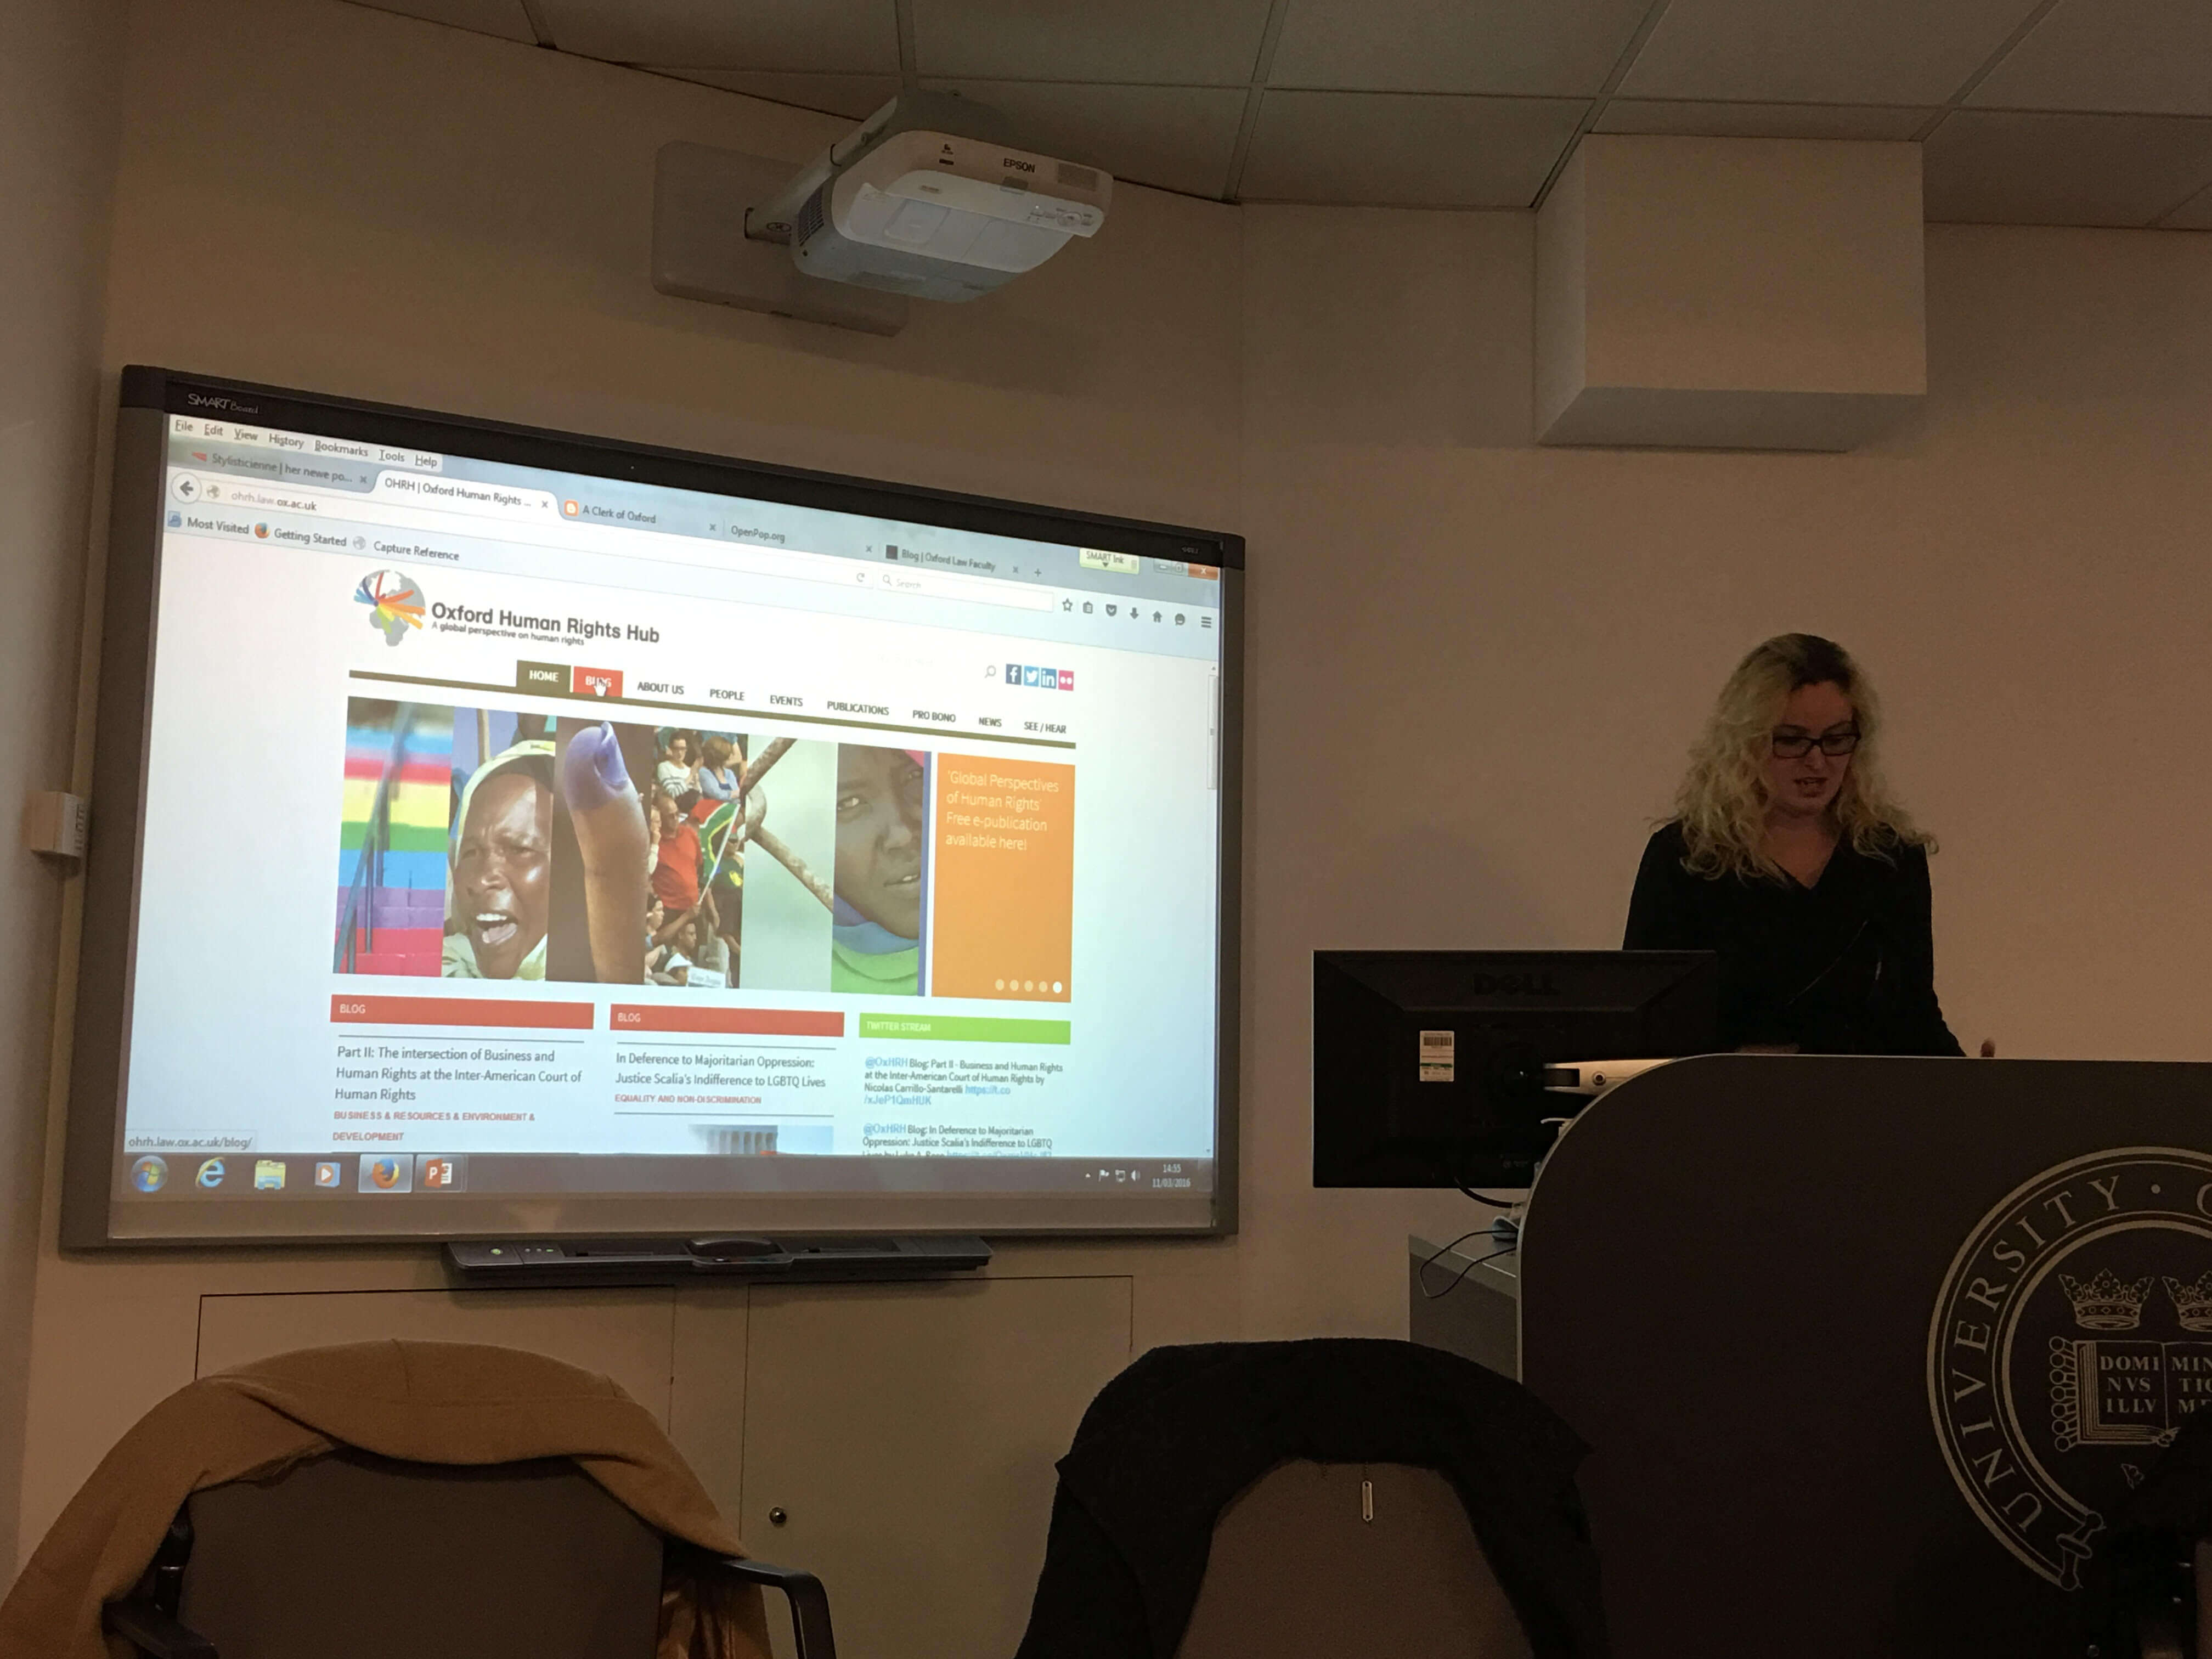 Dr Meghan Campbell, OxHRH Deputy-Director Presents at IT Services Seminar on Blogging and Digtial Scholarship